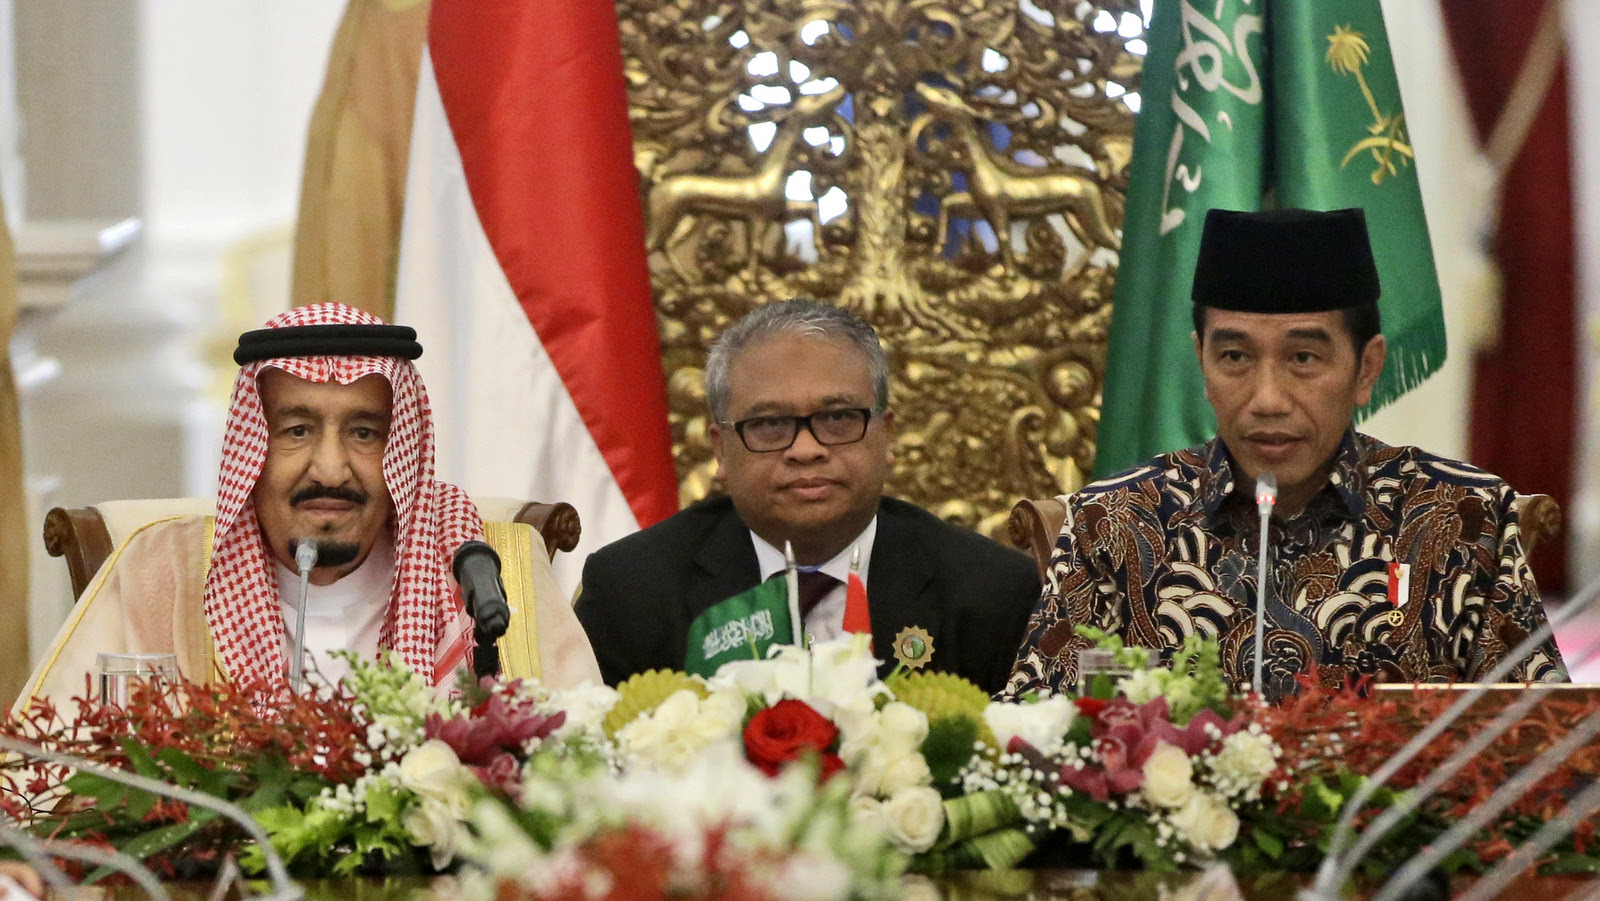 Saudi King Salman, left, and Indonesian President Joko Widodo, right, attend a meeting with Islamic figures at Merdeka Palace in Jakarta, Indonesia, Thursday, March 2, 2017.  (AP/Dita Alangkara)